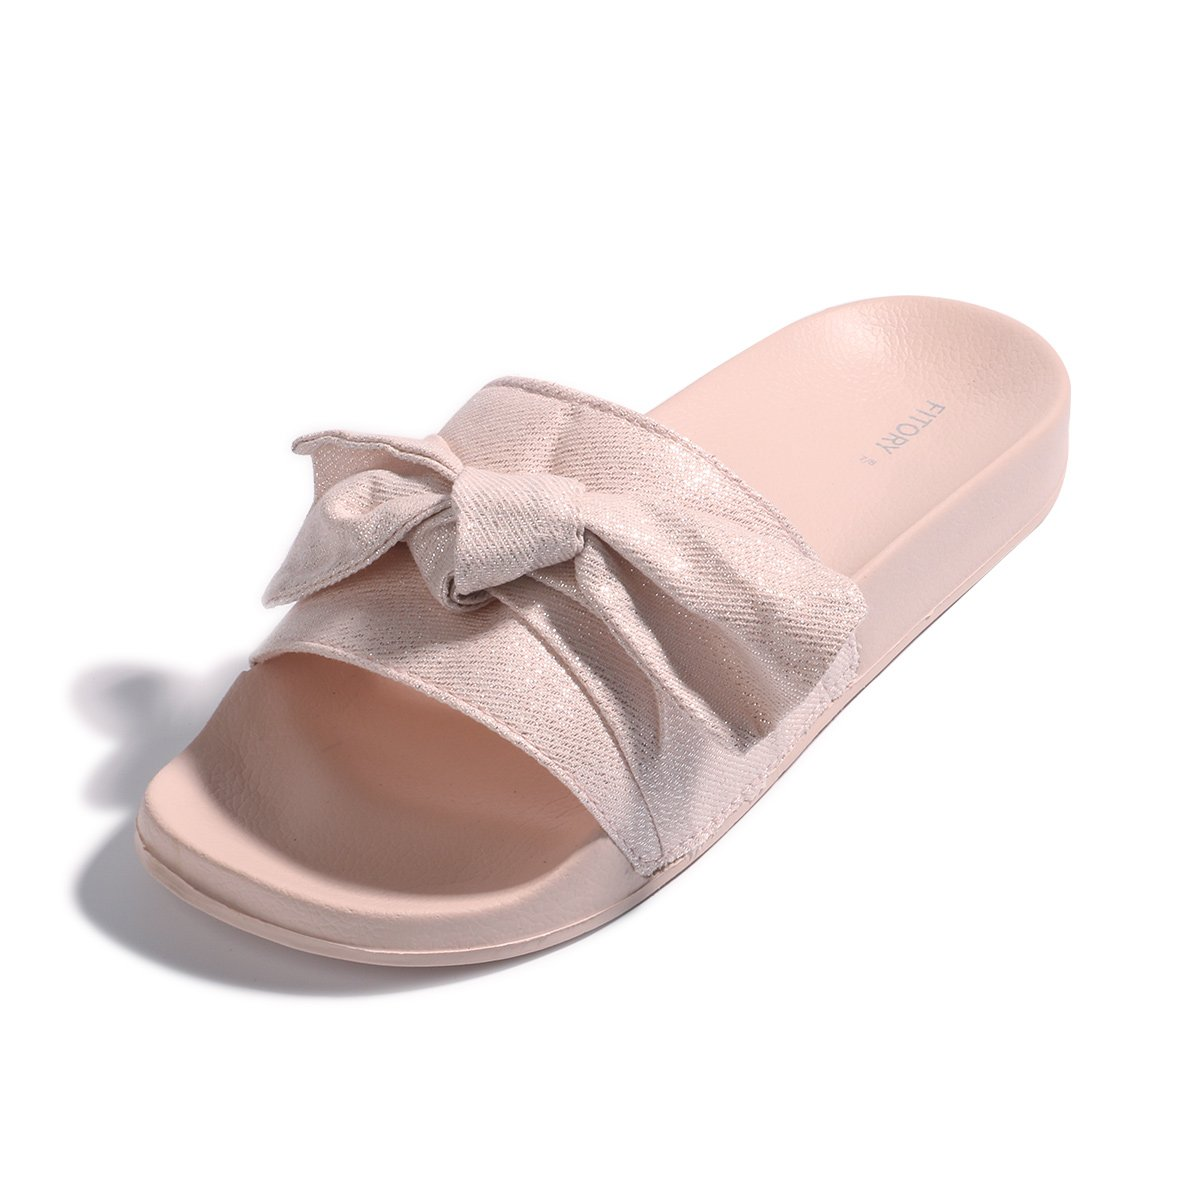 FITORY Womens Slides, Bow Sandals with Arch Support Comfortable Beach Slippers for Summer